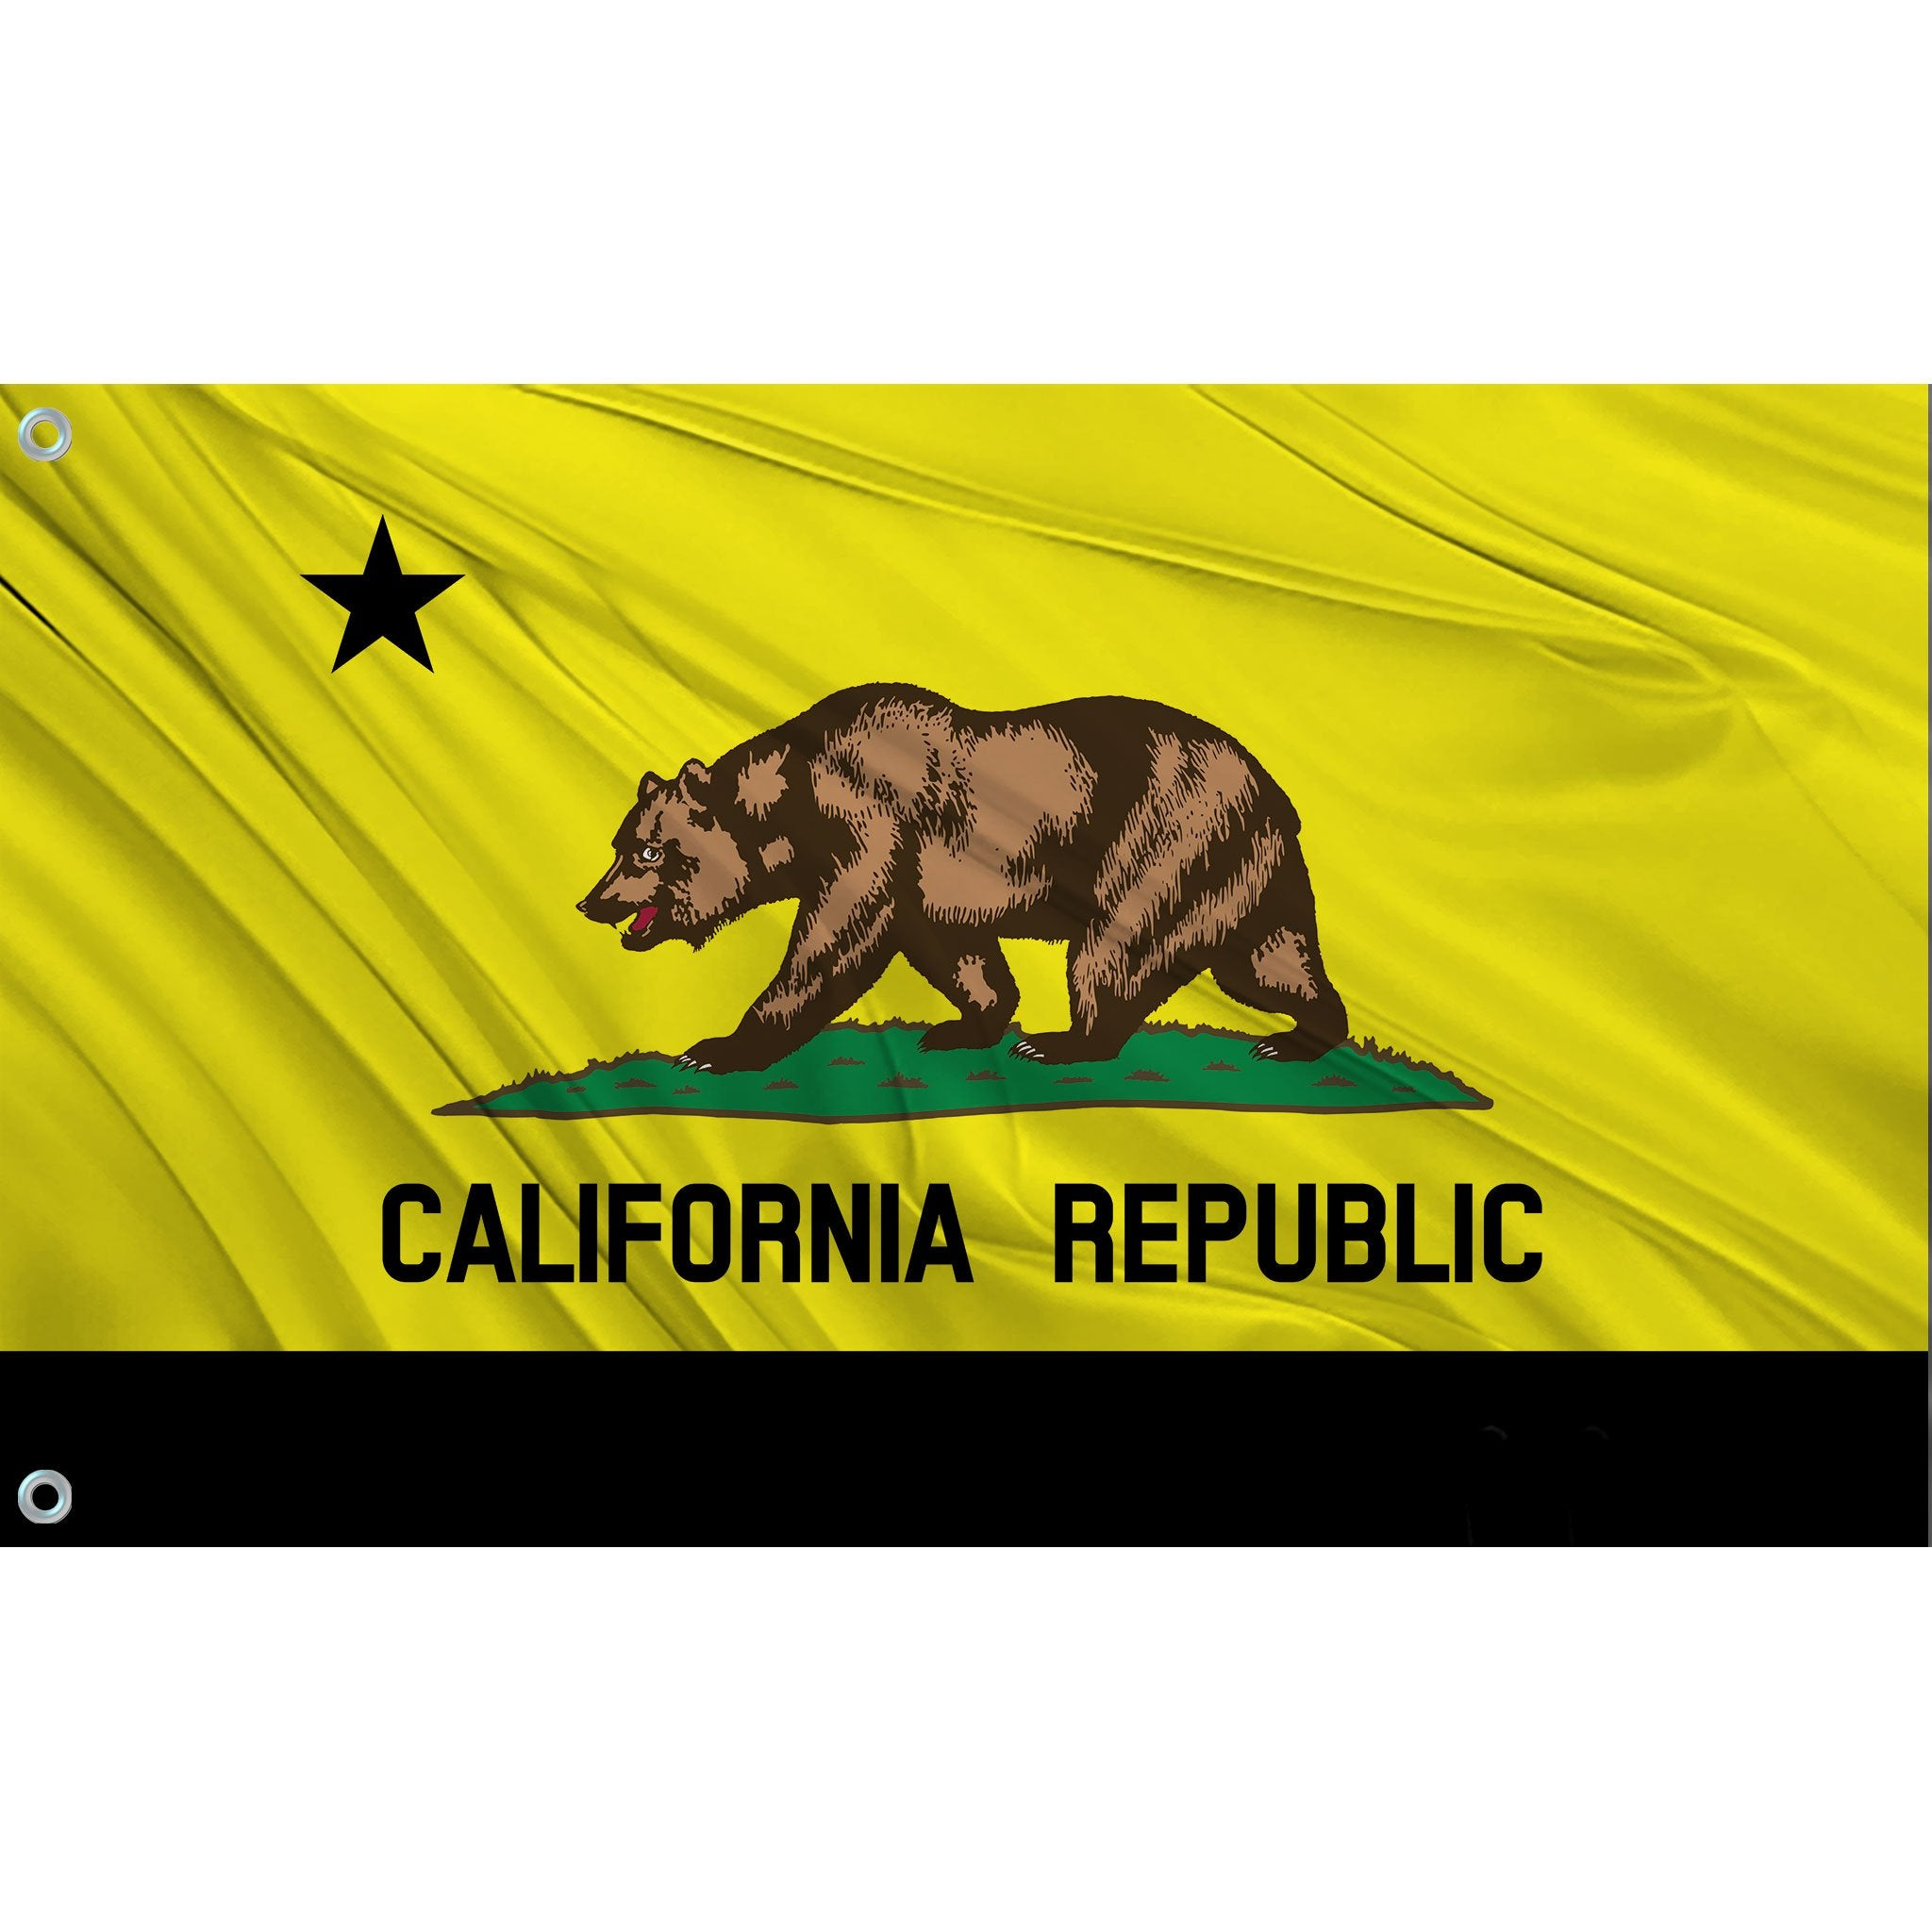 California State Flag (Yellow | Black)